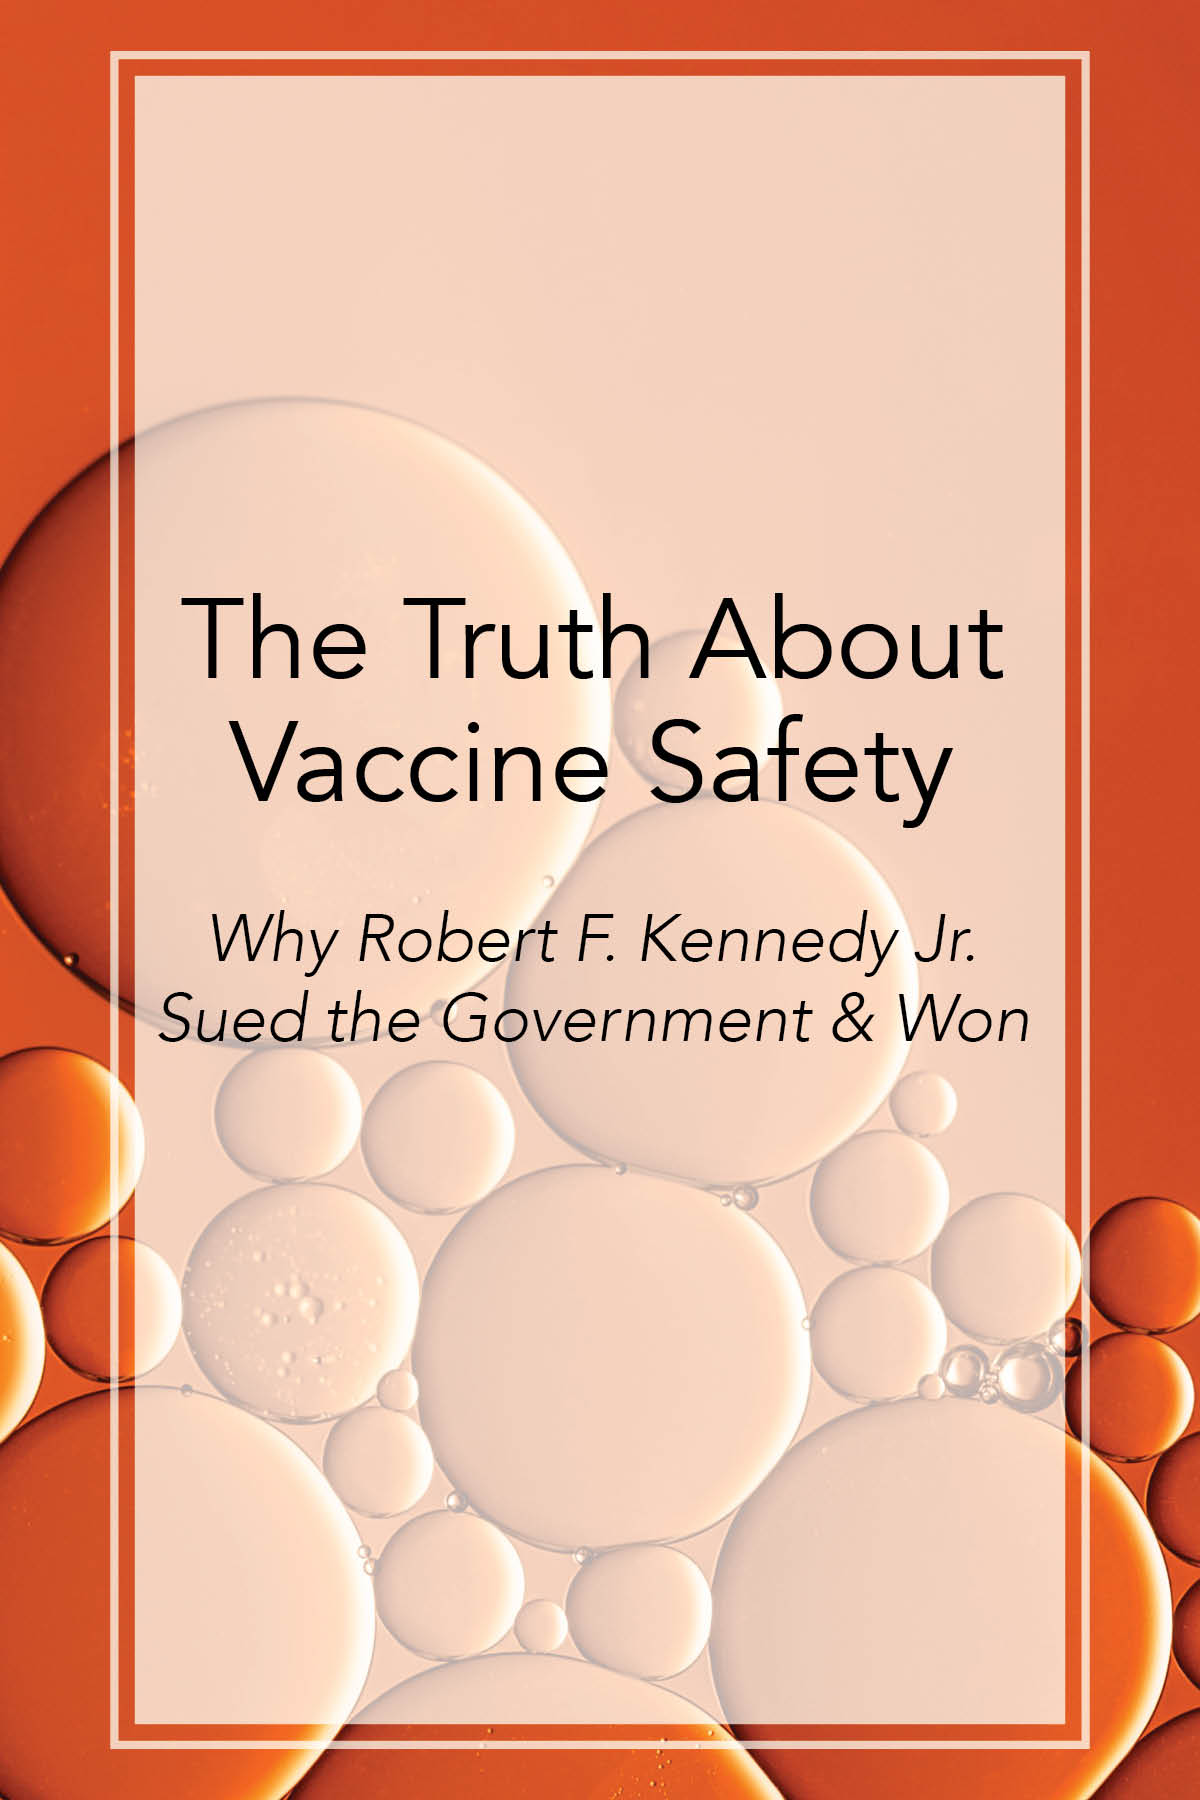 Robert F Kennedy Sues Government Over Vaccine Safety by AIM Integrative Medicine